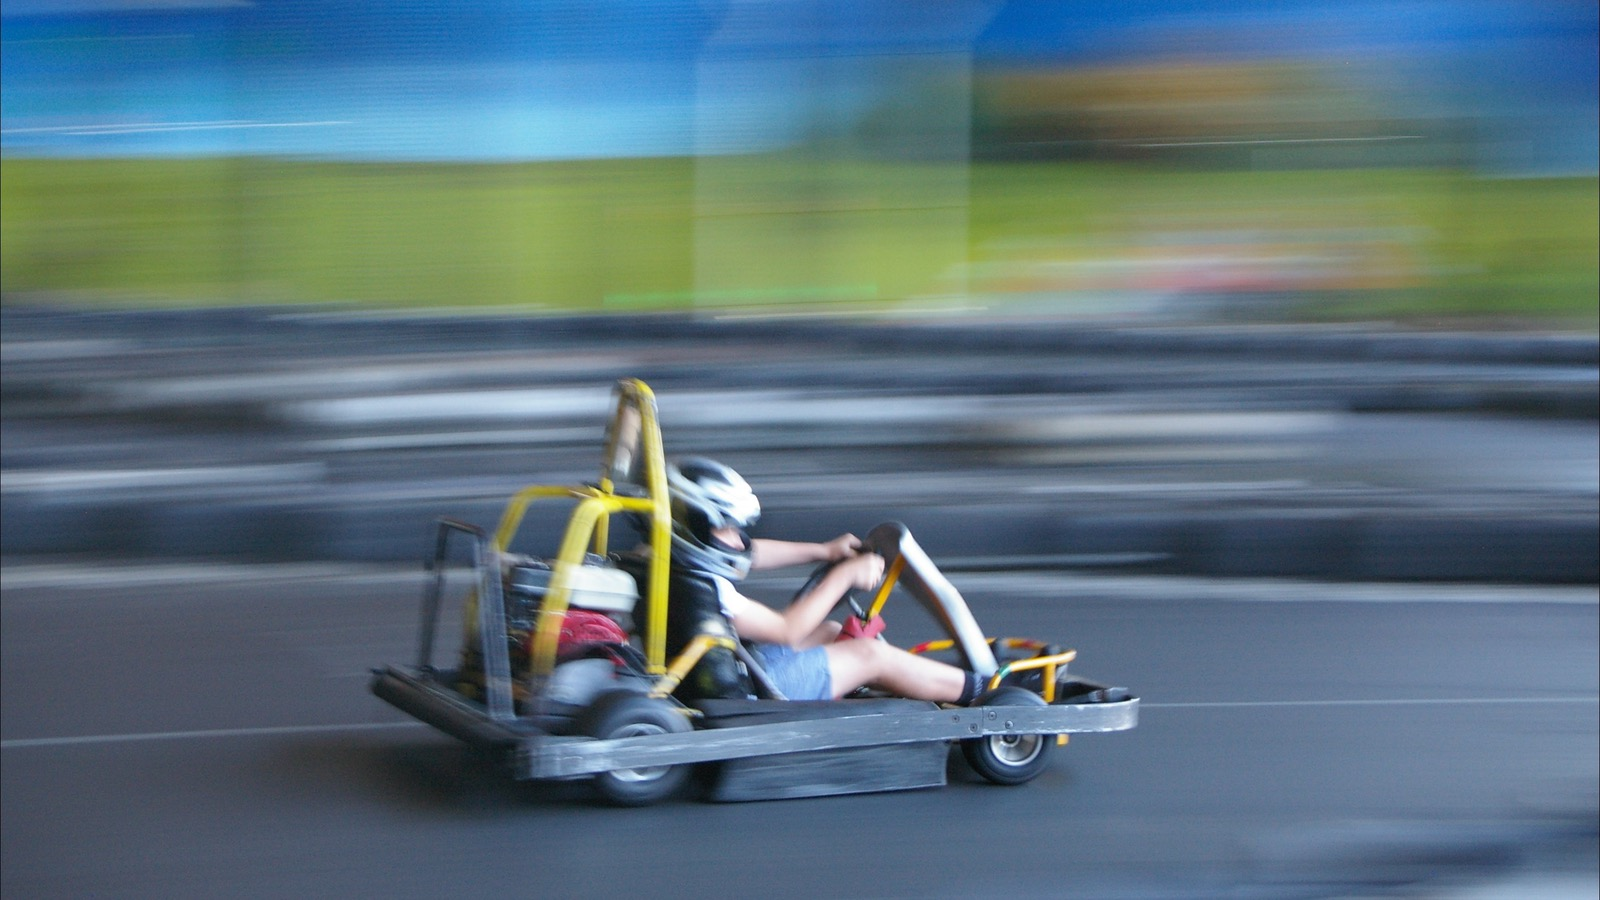 Indoor Go kart racing, fun for all ages and all abilities